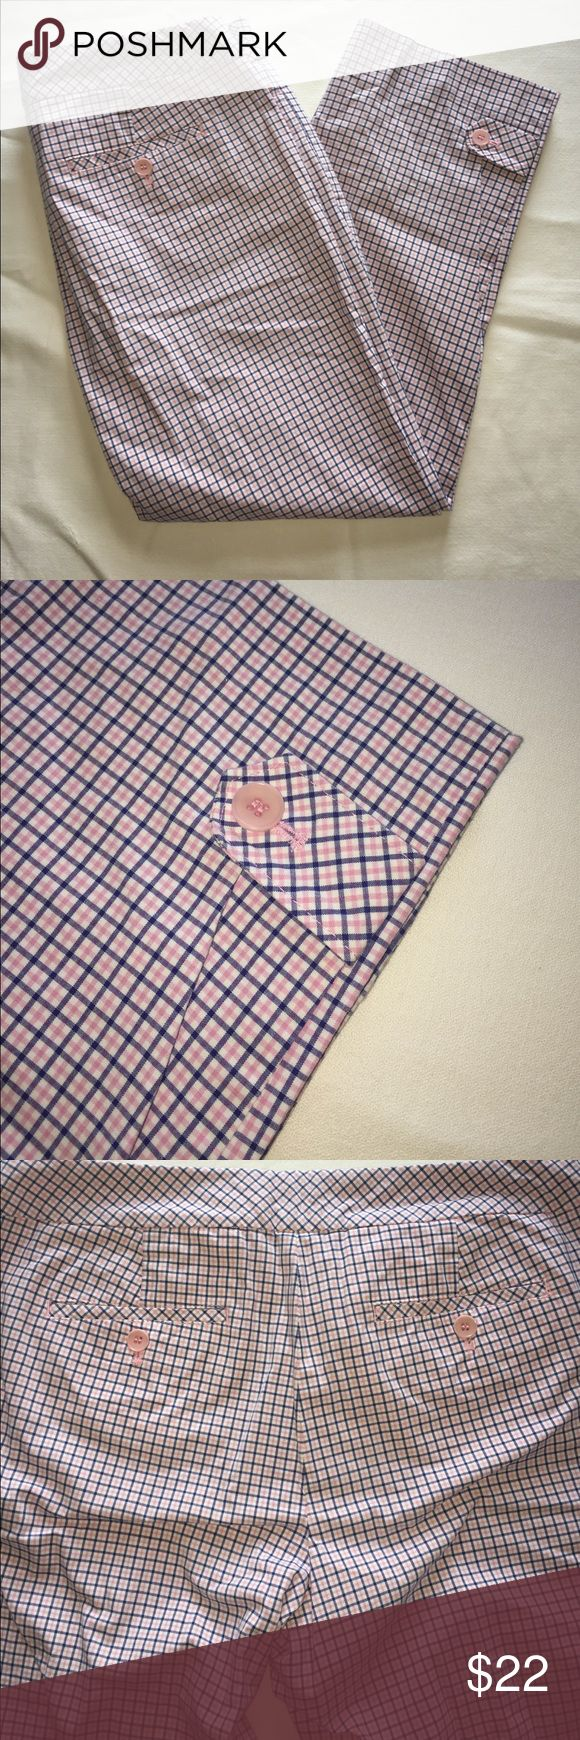 "Talbots Capri Size 8 In excellent condition. These capris are pink, blue and white plaid. There are two front and two shallow back pockets. These zip up the front. Inseam measures 23"" and the rose is 9 1/2"". Talbots Pants Capris"